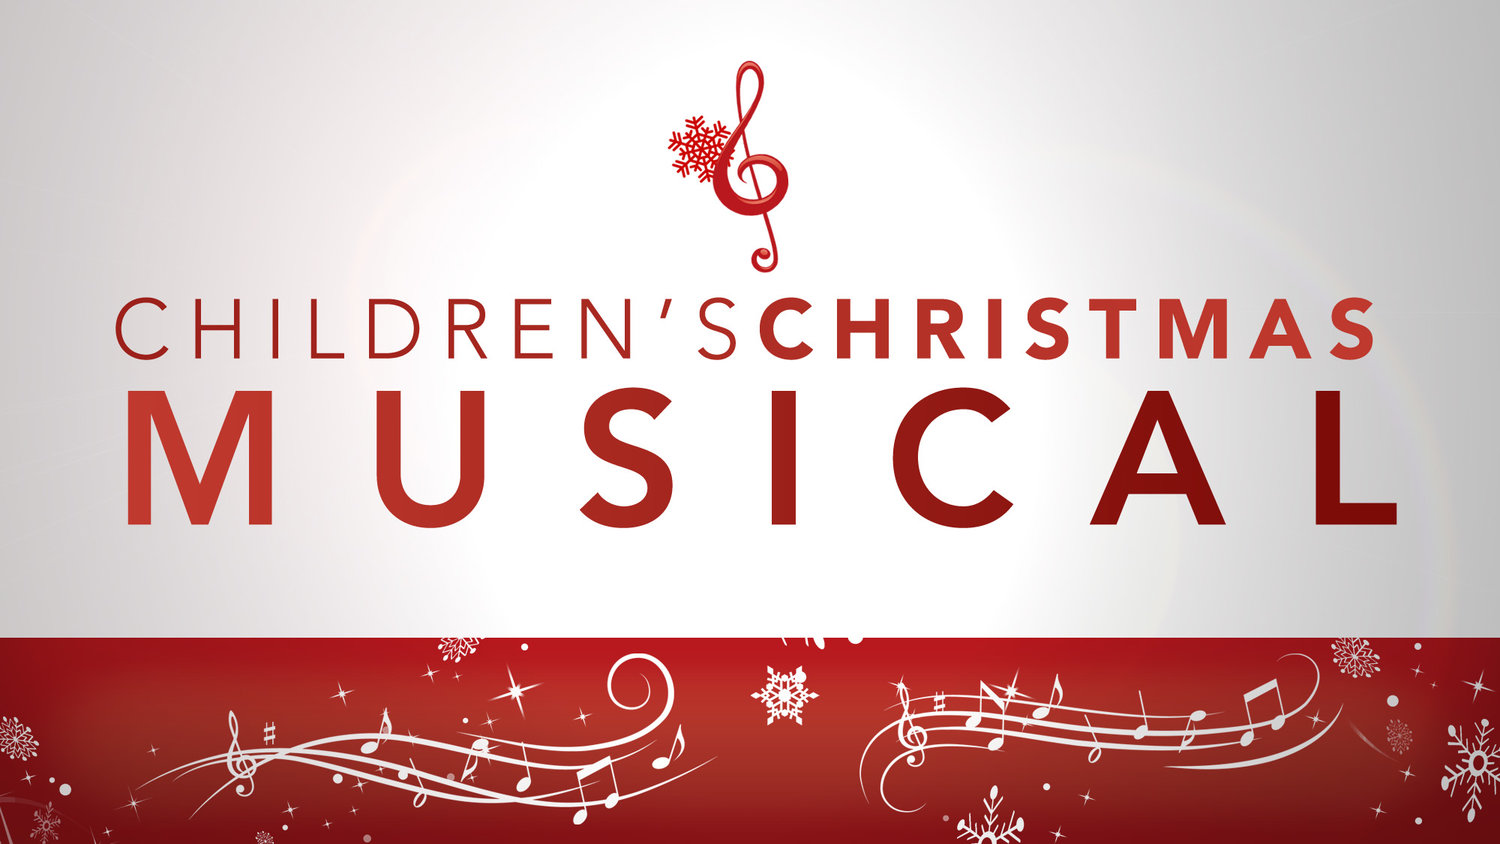 childrens christmas musical - Childrens Christmas Musicals